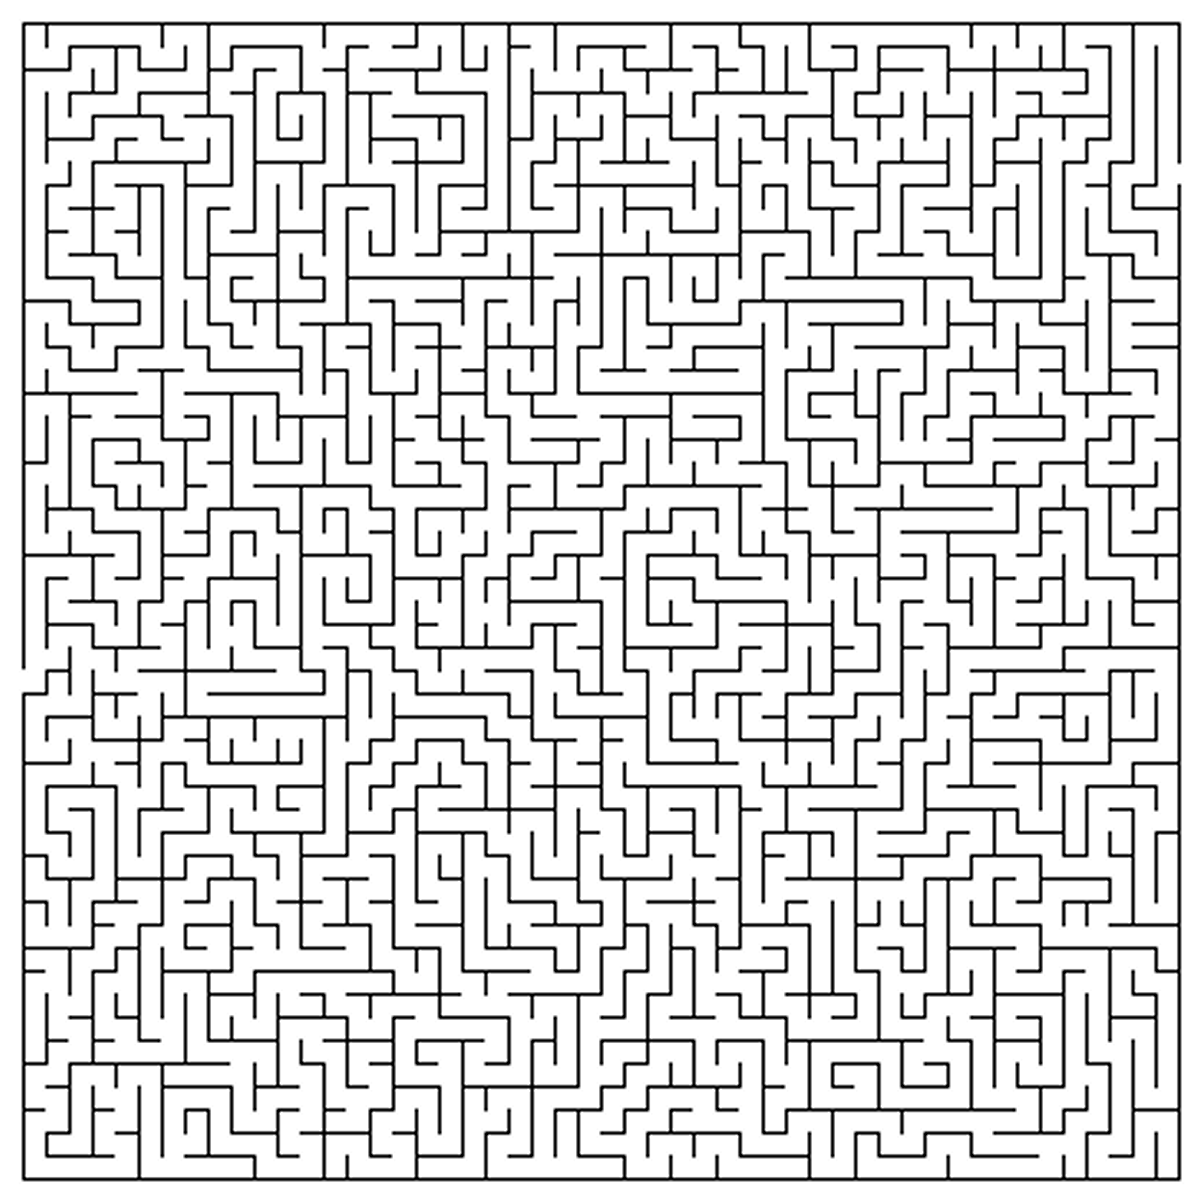 51 Best Mazes Coloring Pages For Kids